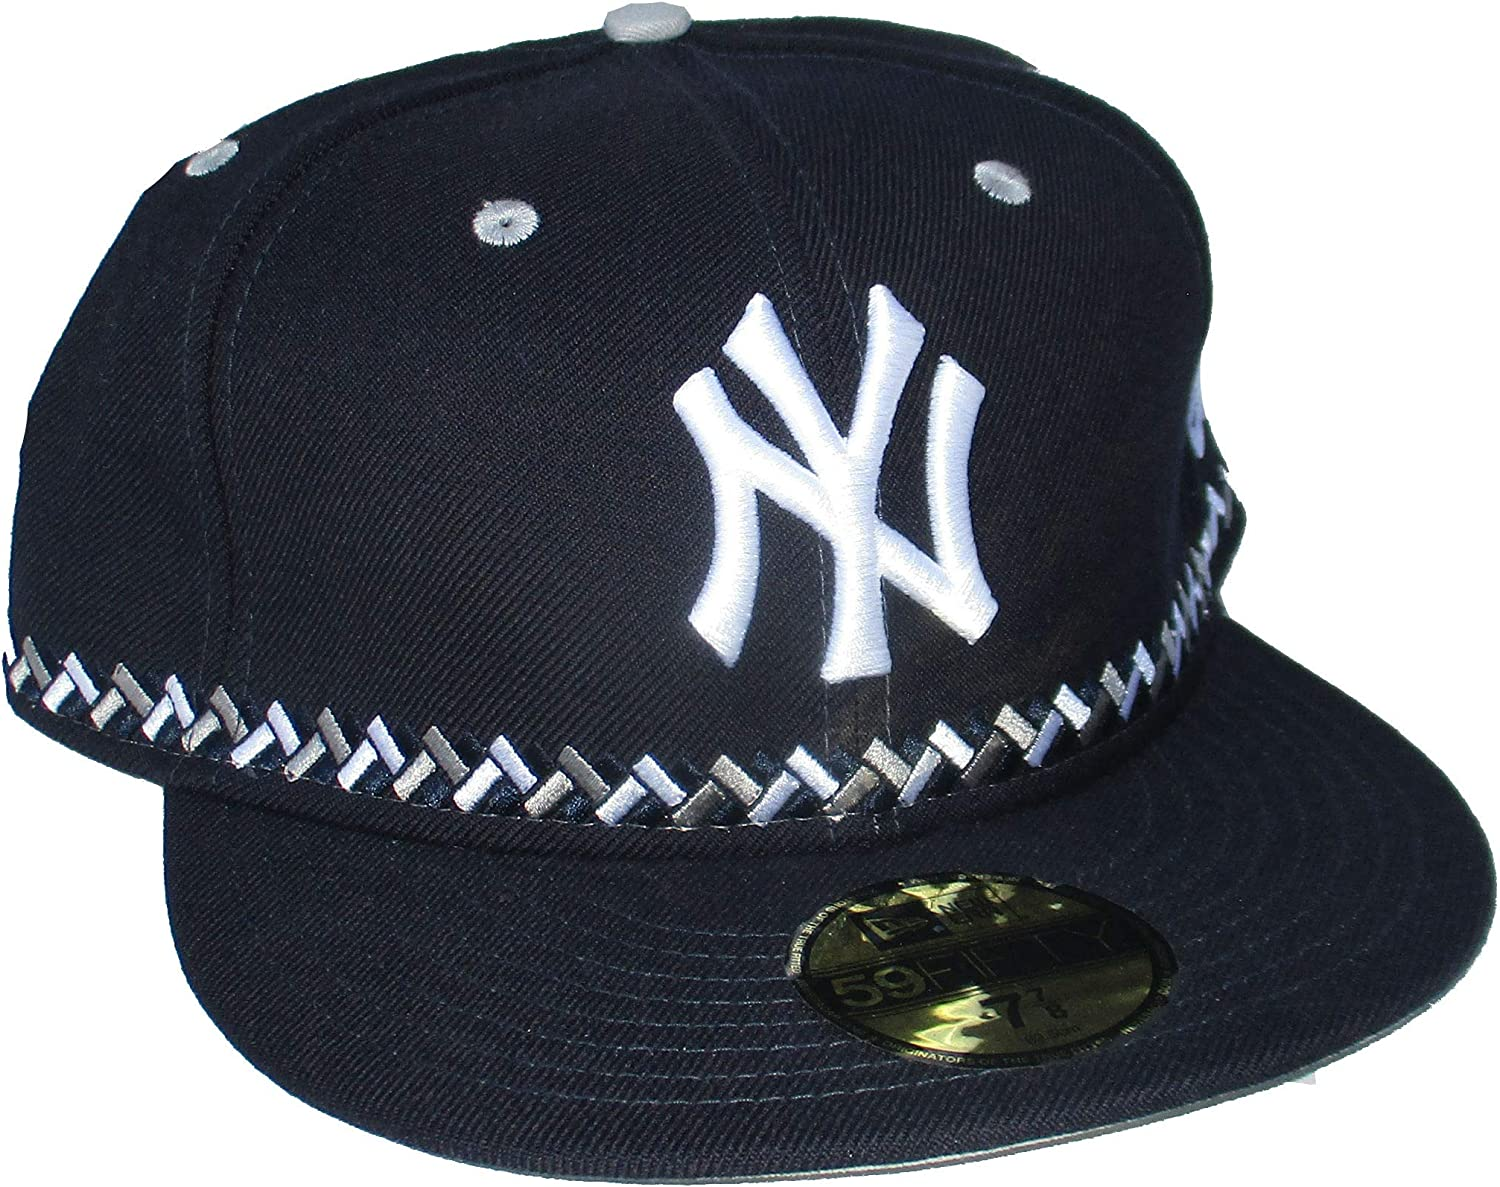 New York Yankees Fitted Size 7 7/8 Braid Band Cap Hat - Navy